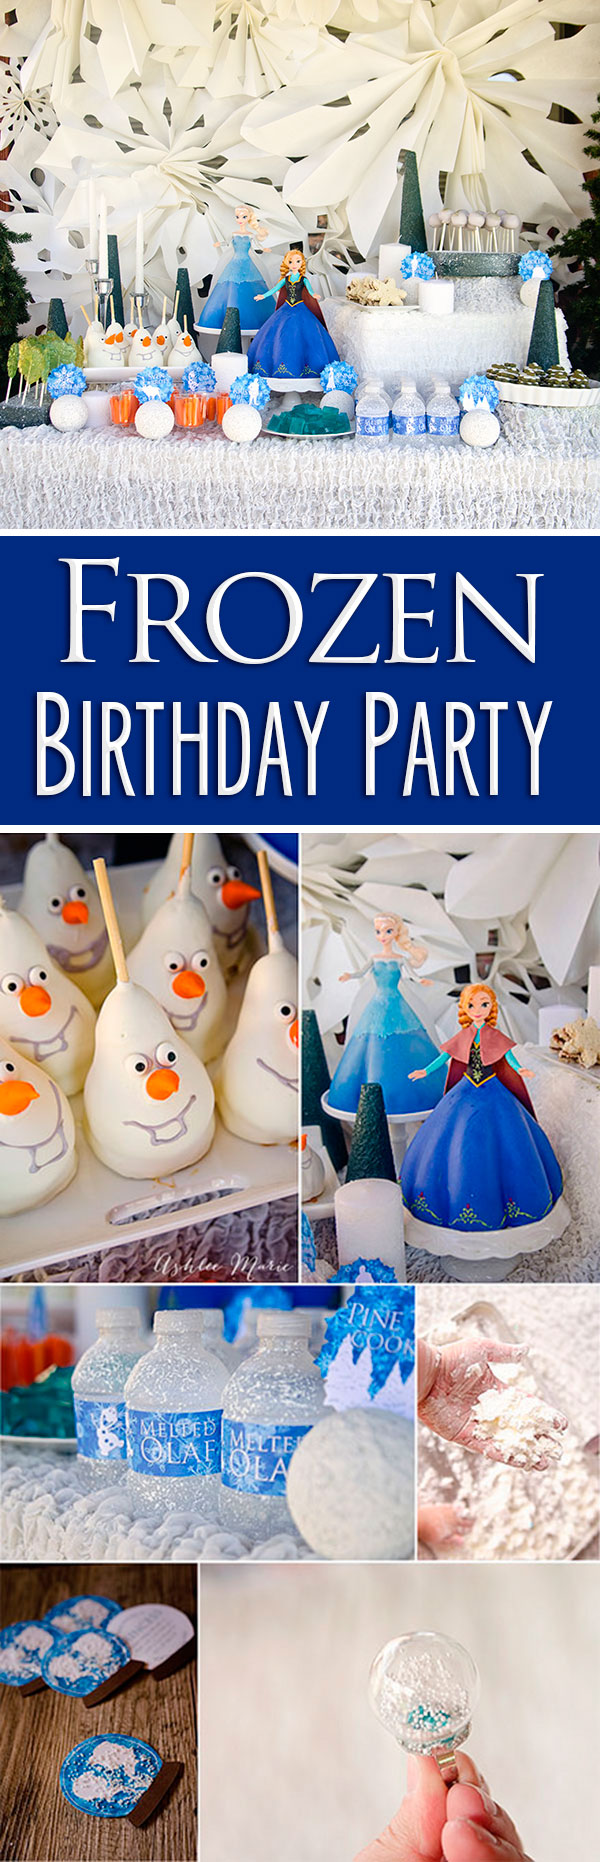 Frozen is the birthday party of the year and this full party is no exception.  Tons of themed movie party food, cake tutorials, decorations and crafts! show your disneyside with a Frozen party